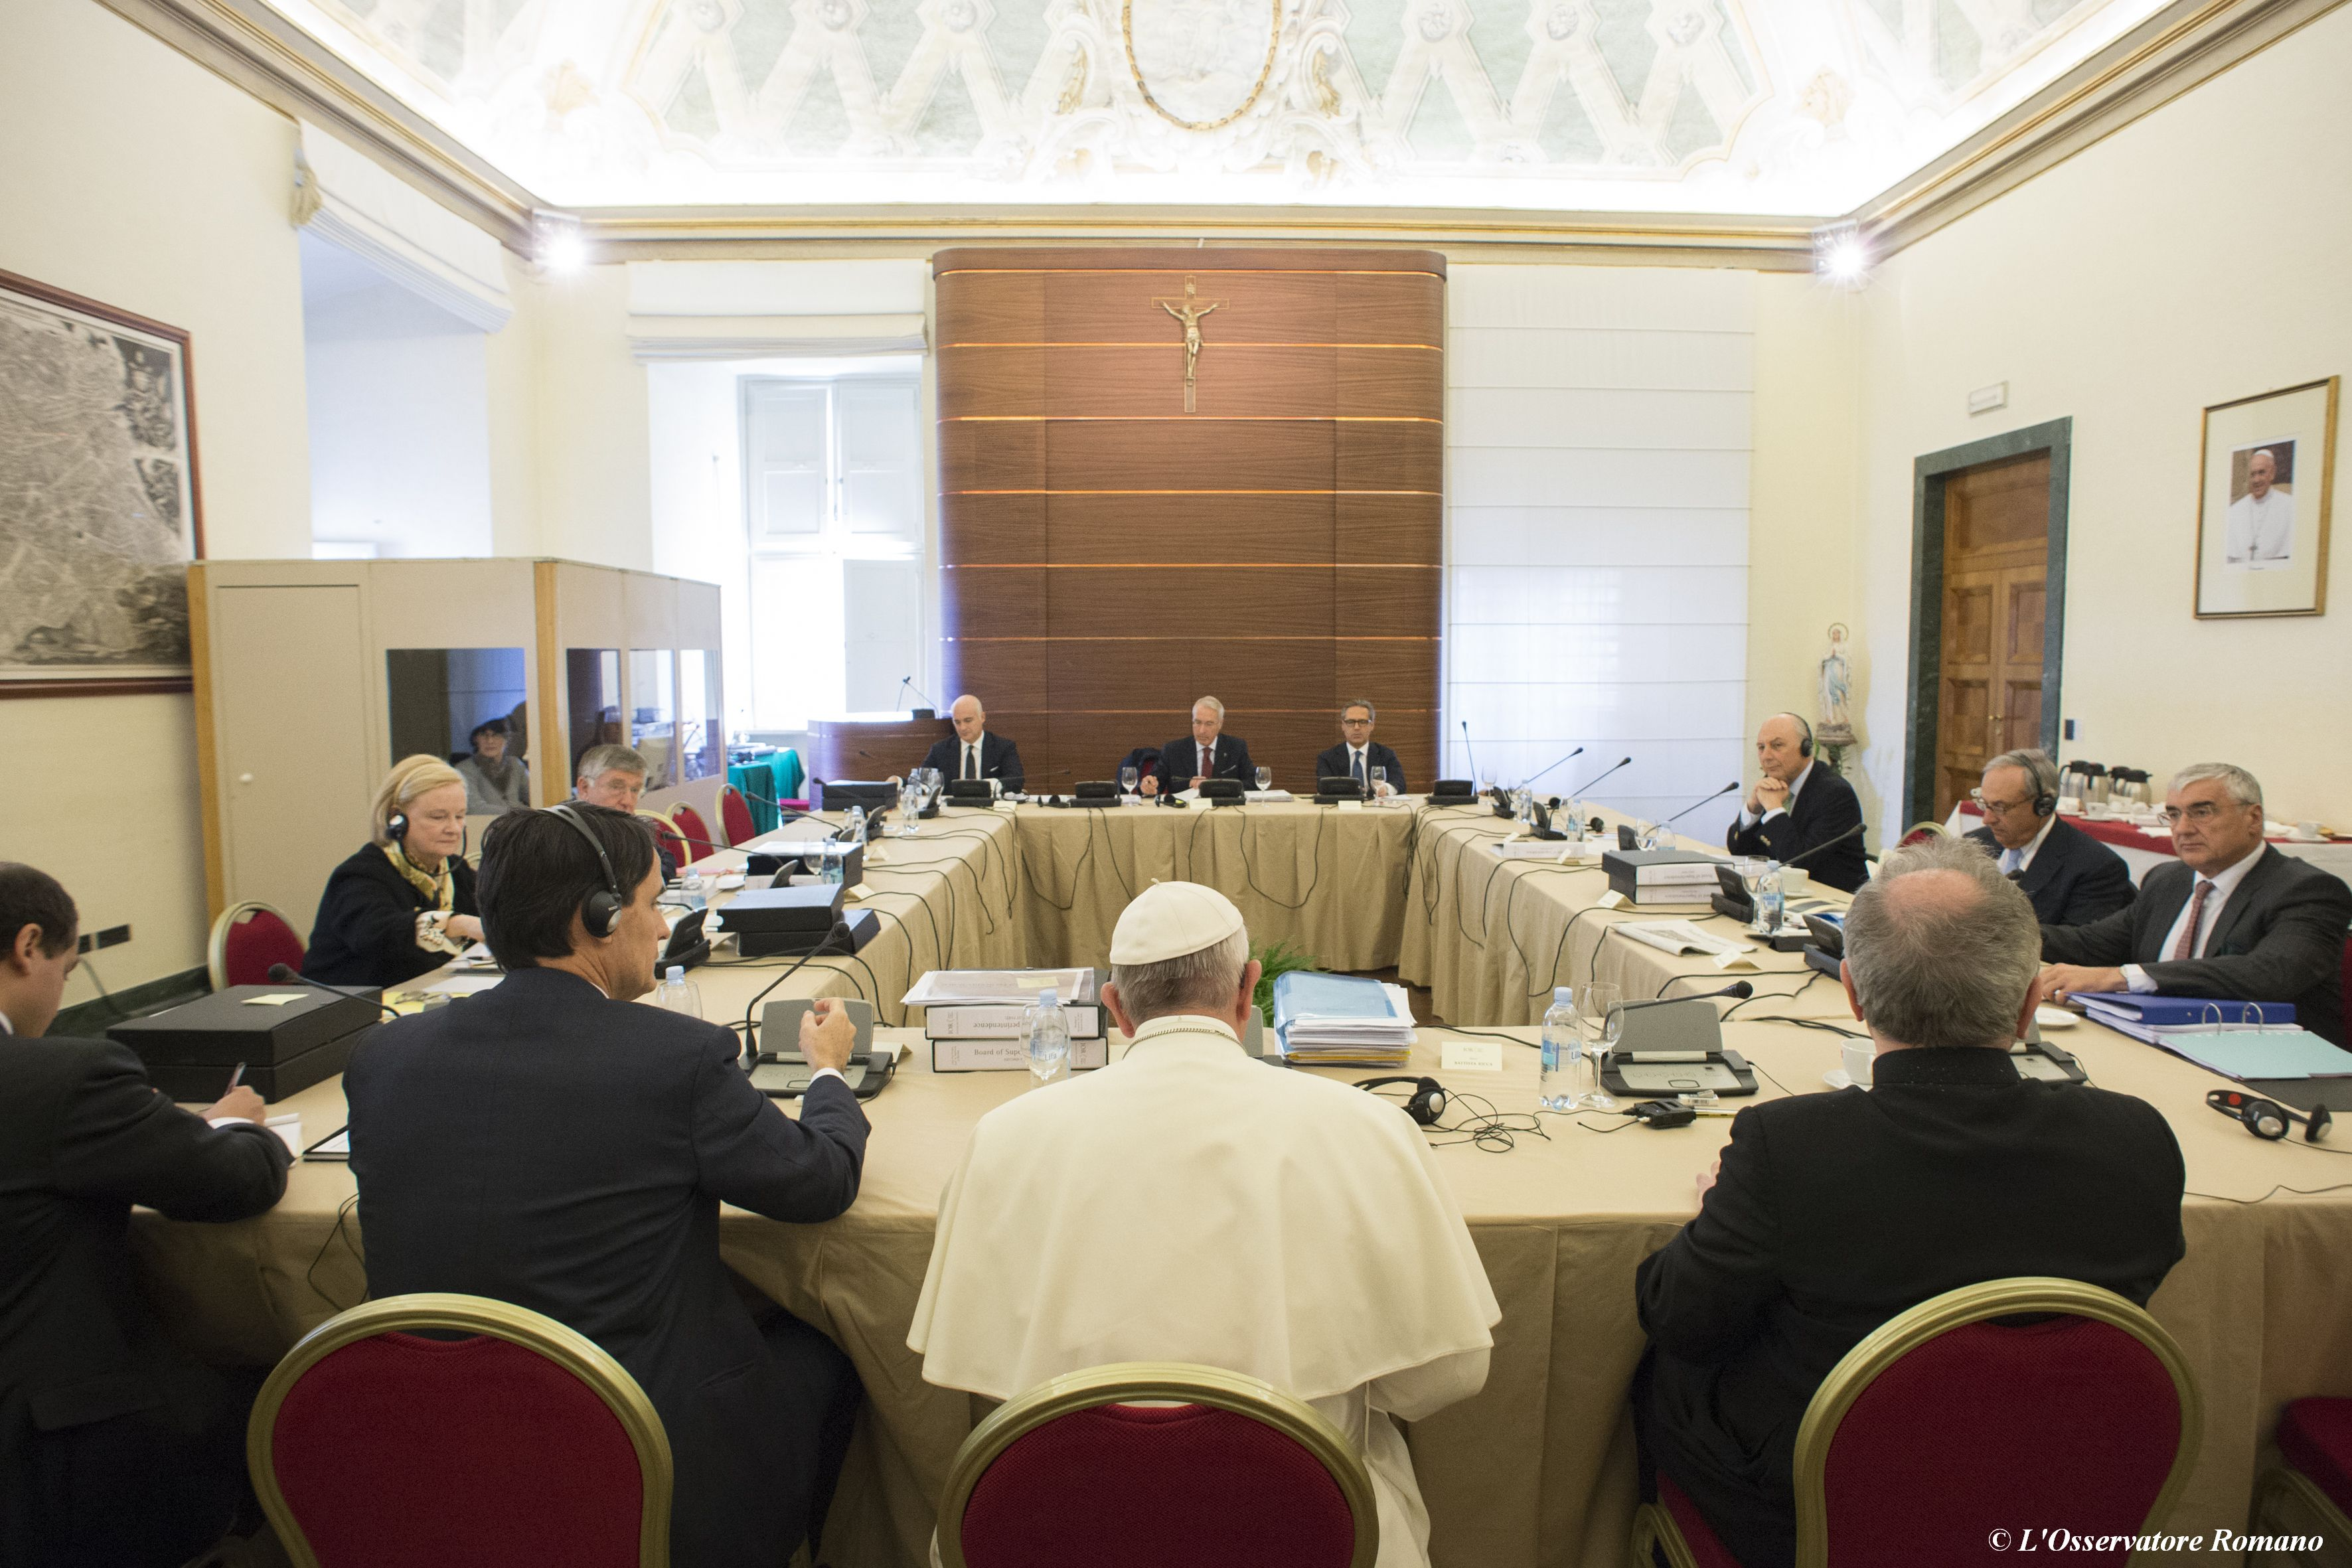 Pope Francis at the IOR